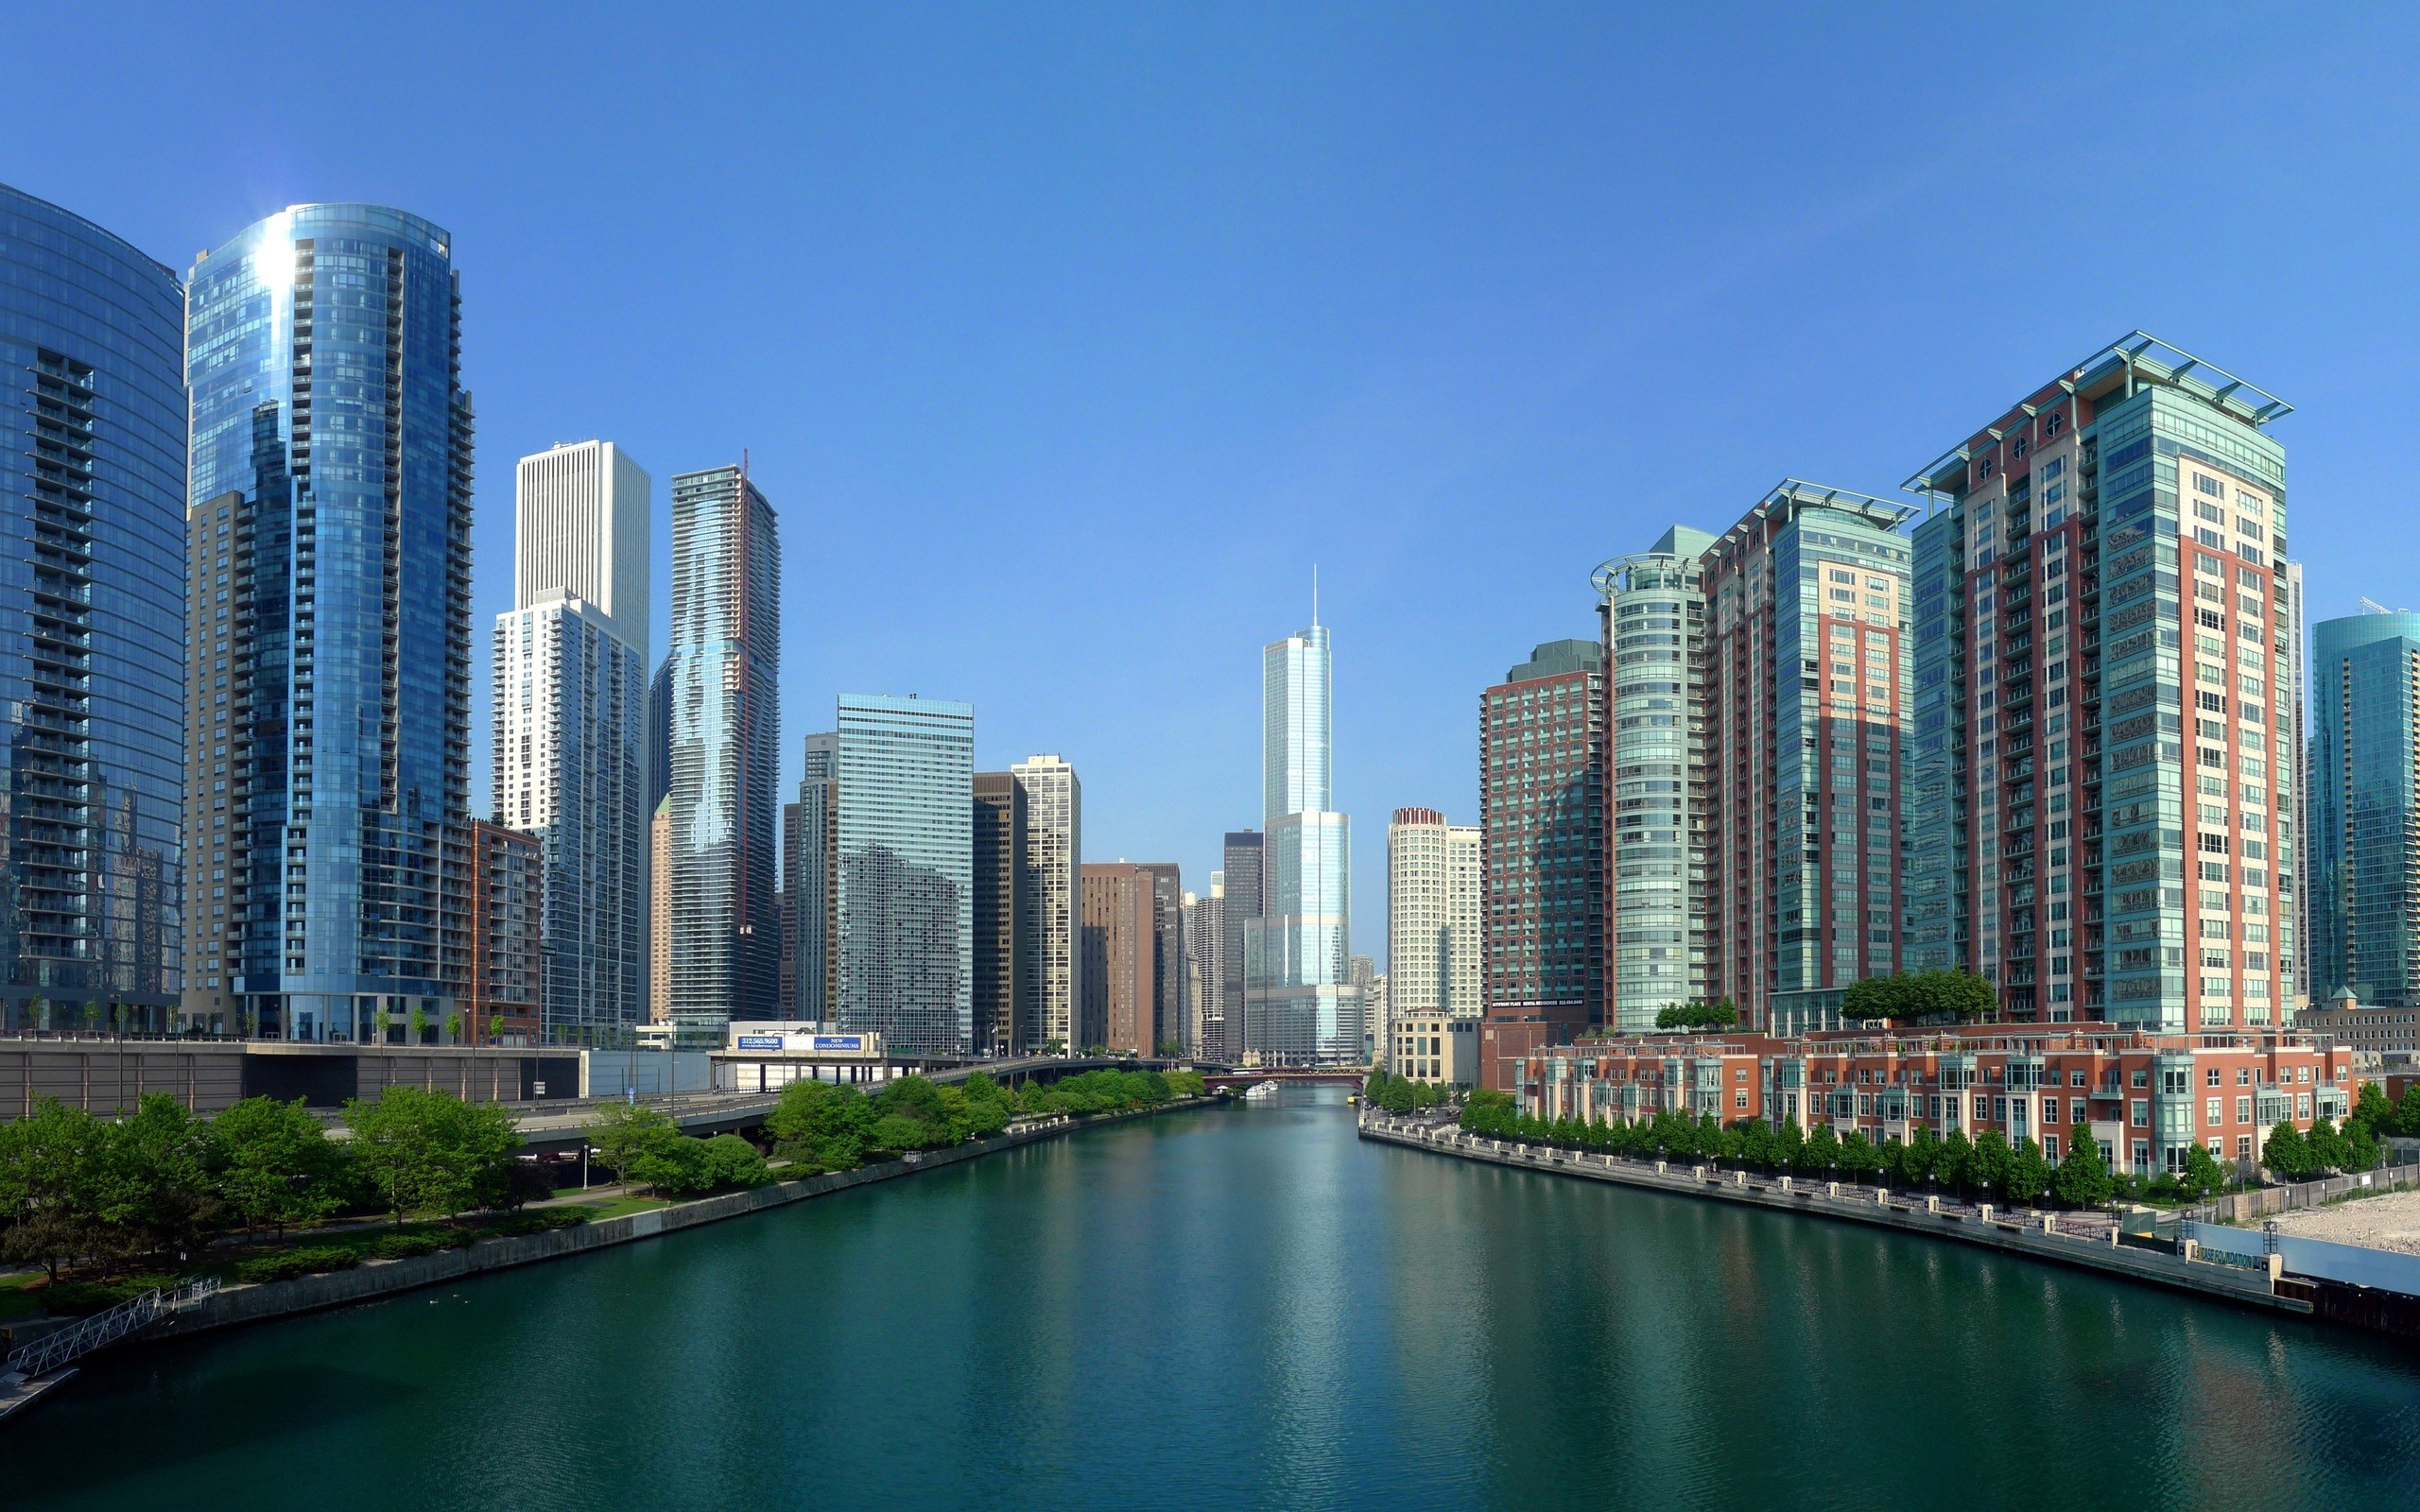 2560x1600 178 Chicago HD Wallpapers Backgrounds Wallpaper Abyss - HD Wallpapers